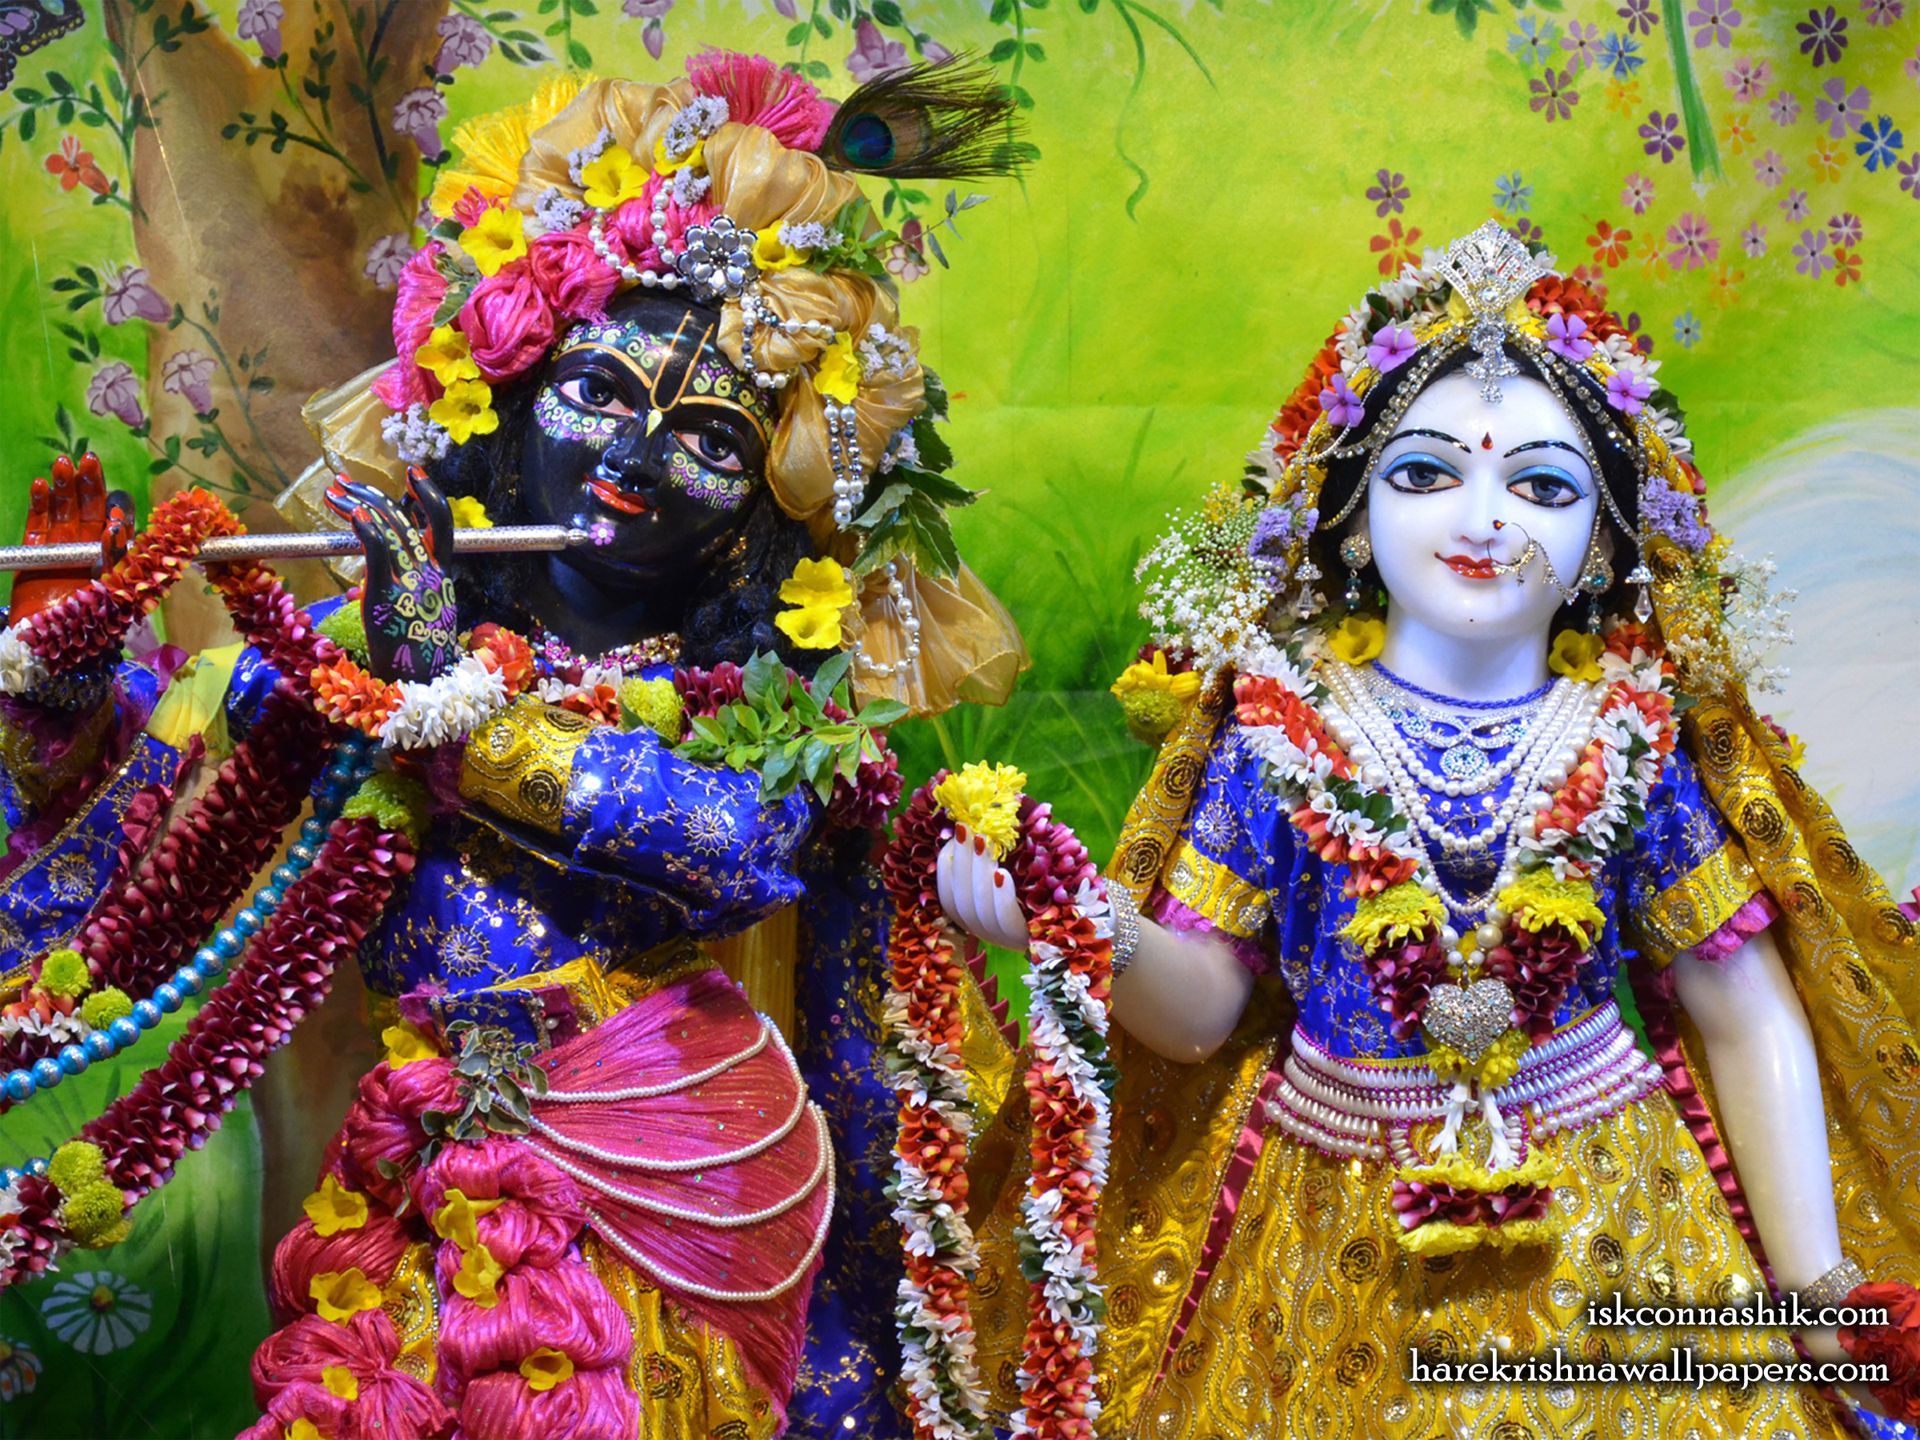 Sri Sri Radha Madan Gopal Close up Wallpaper (014) Size 1920x1440 Download